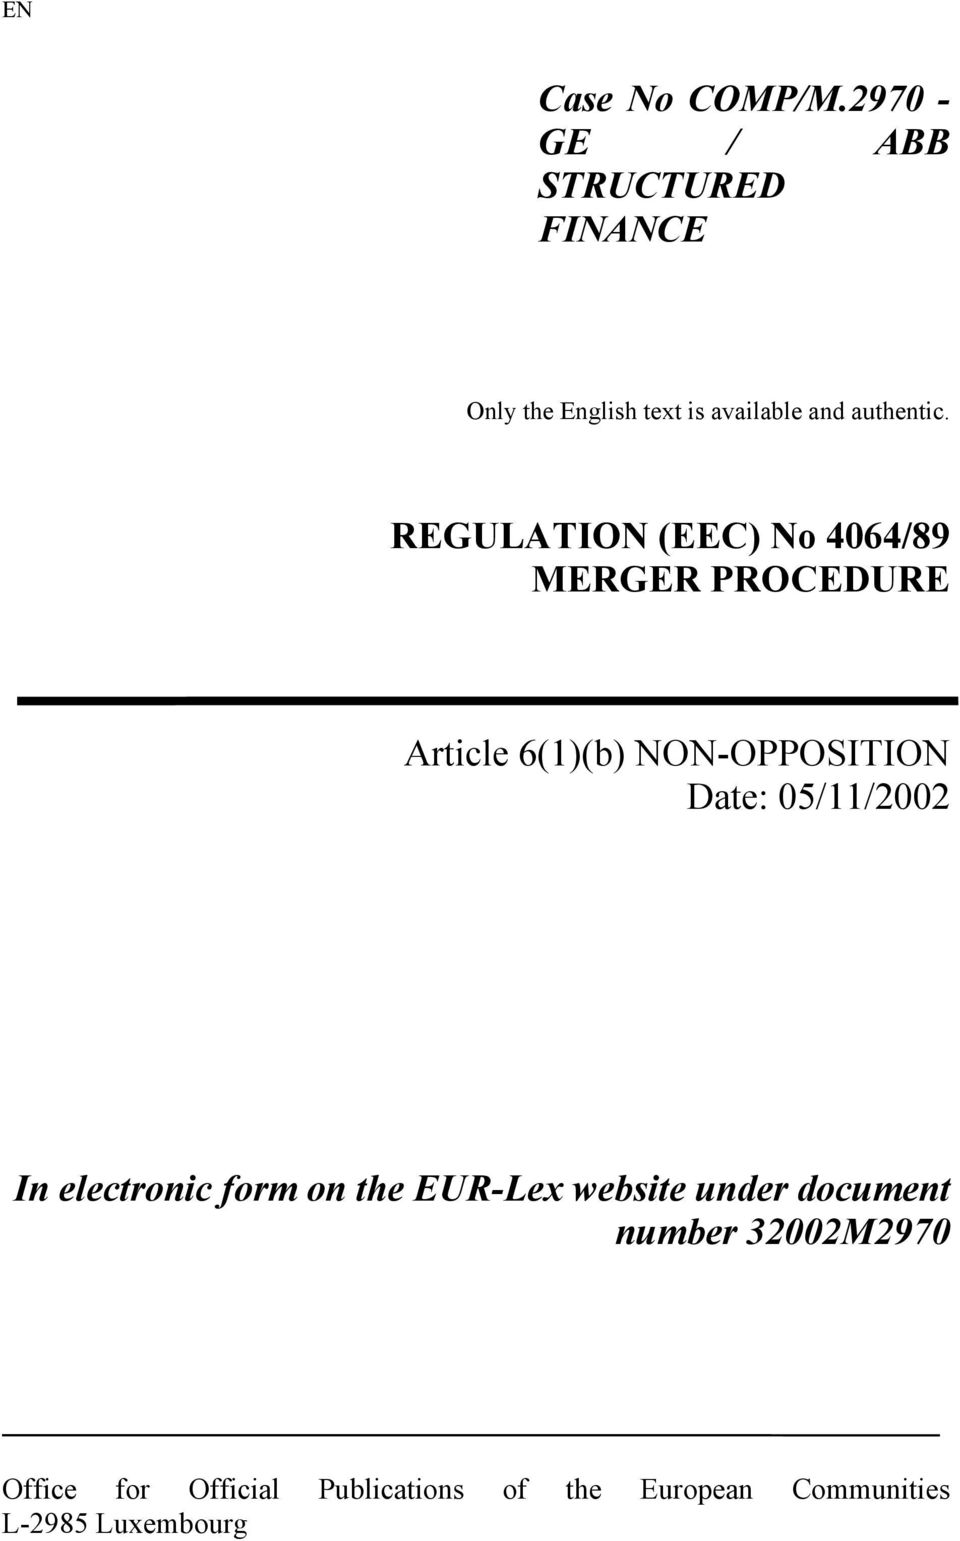 REGULATION (EEC) No 4064/89 MERGER PROCEDURE Article 6(1)(b) NON-OPPOSITION Date: